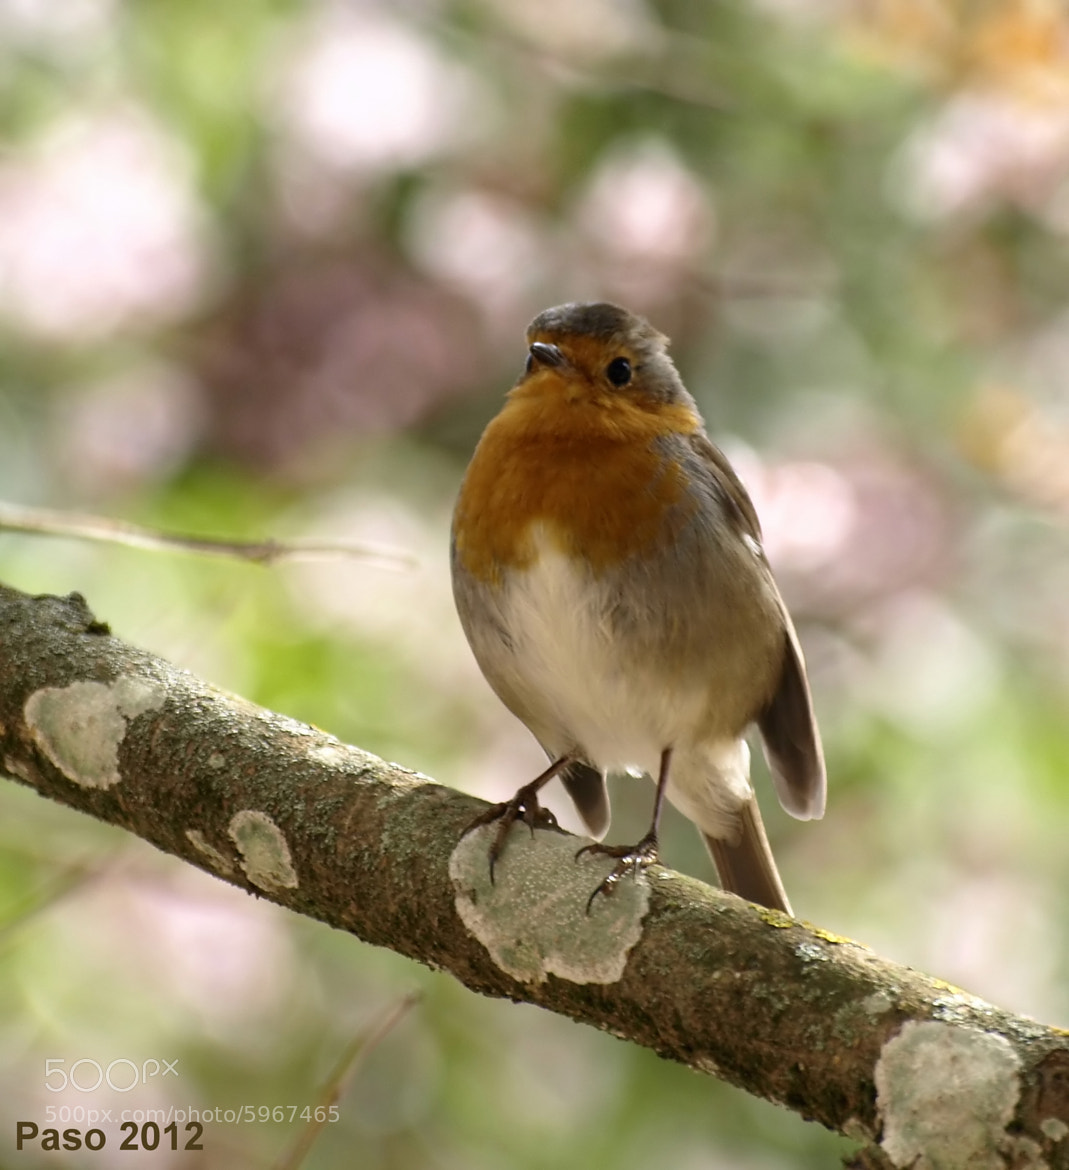 Photograph Erithacus rubecula(Petirrojo) by Oly_21 on 500px